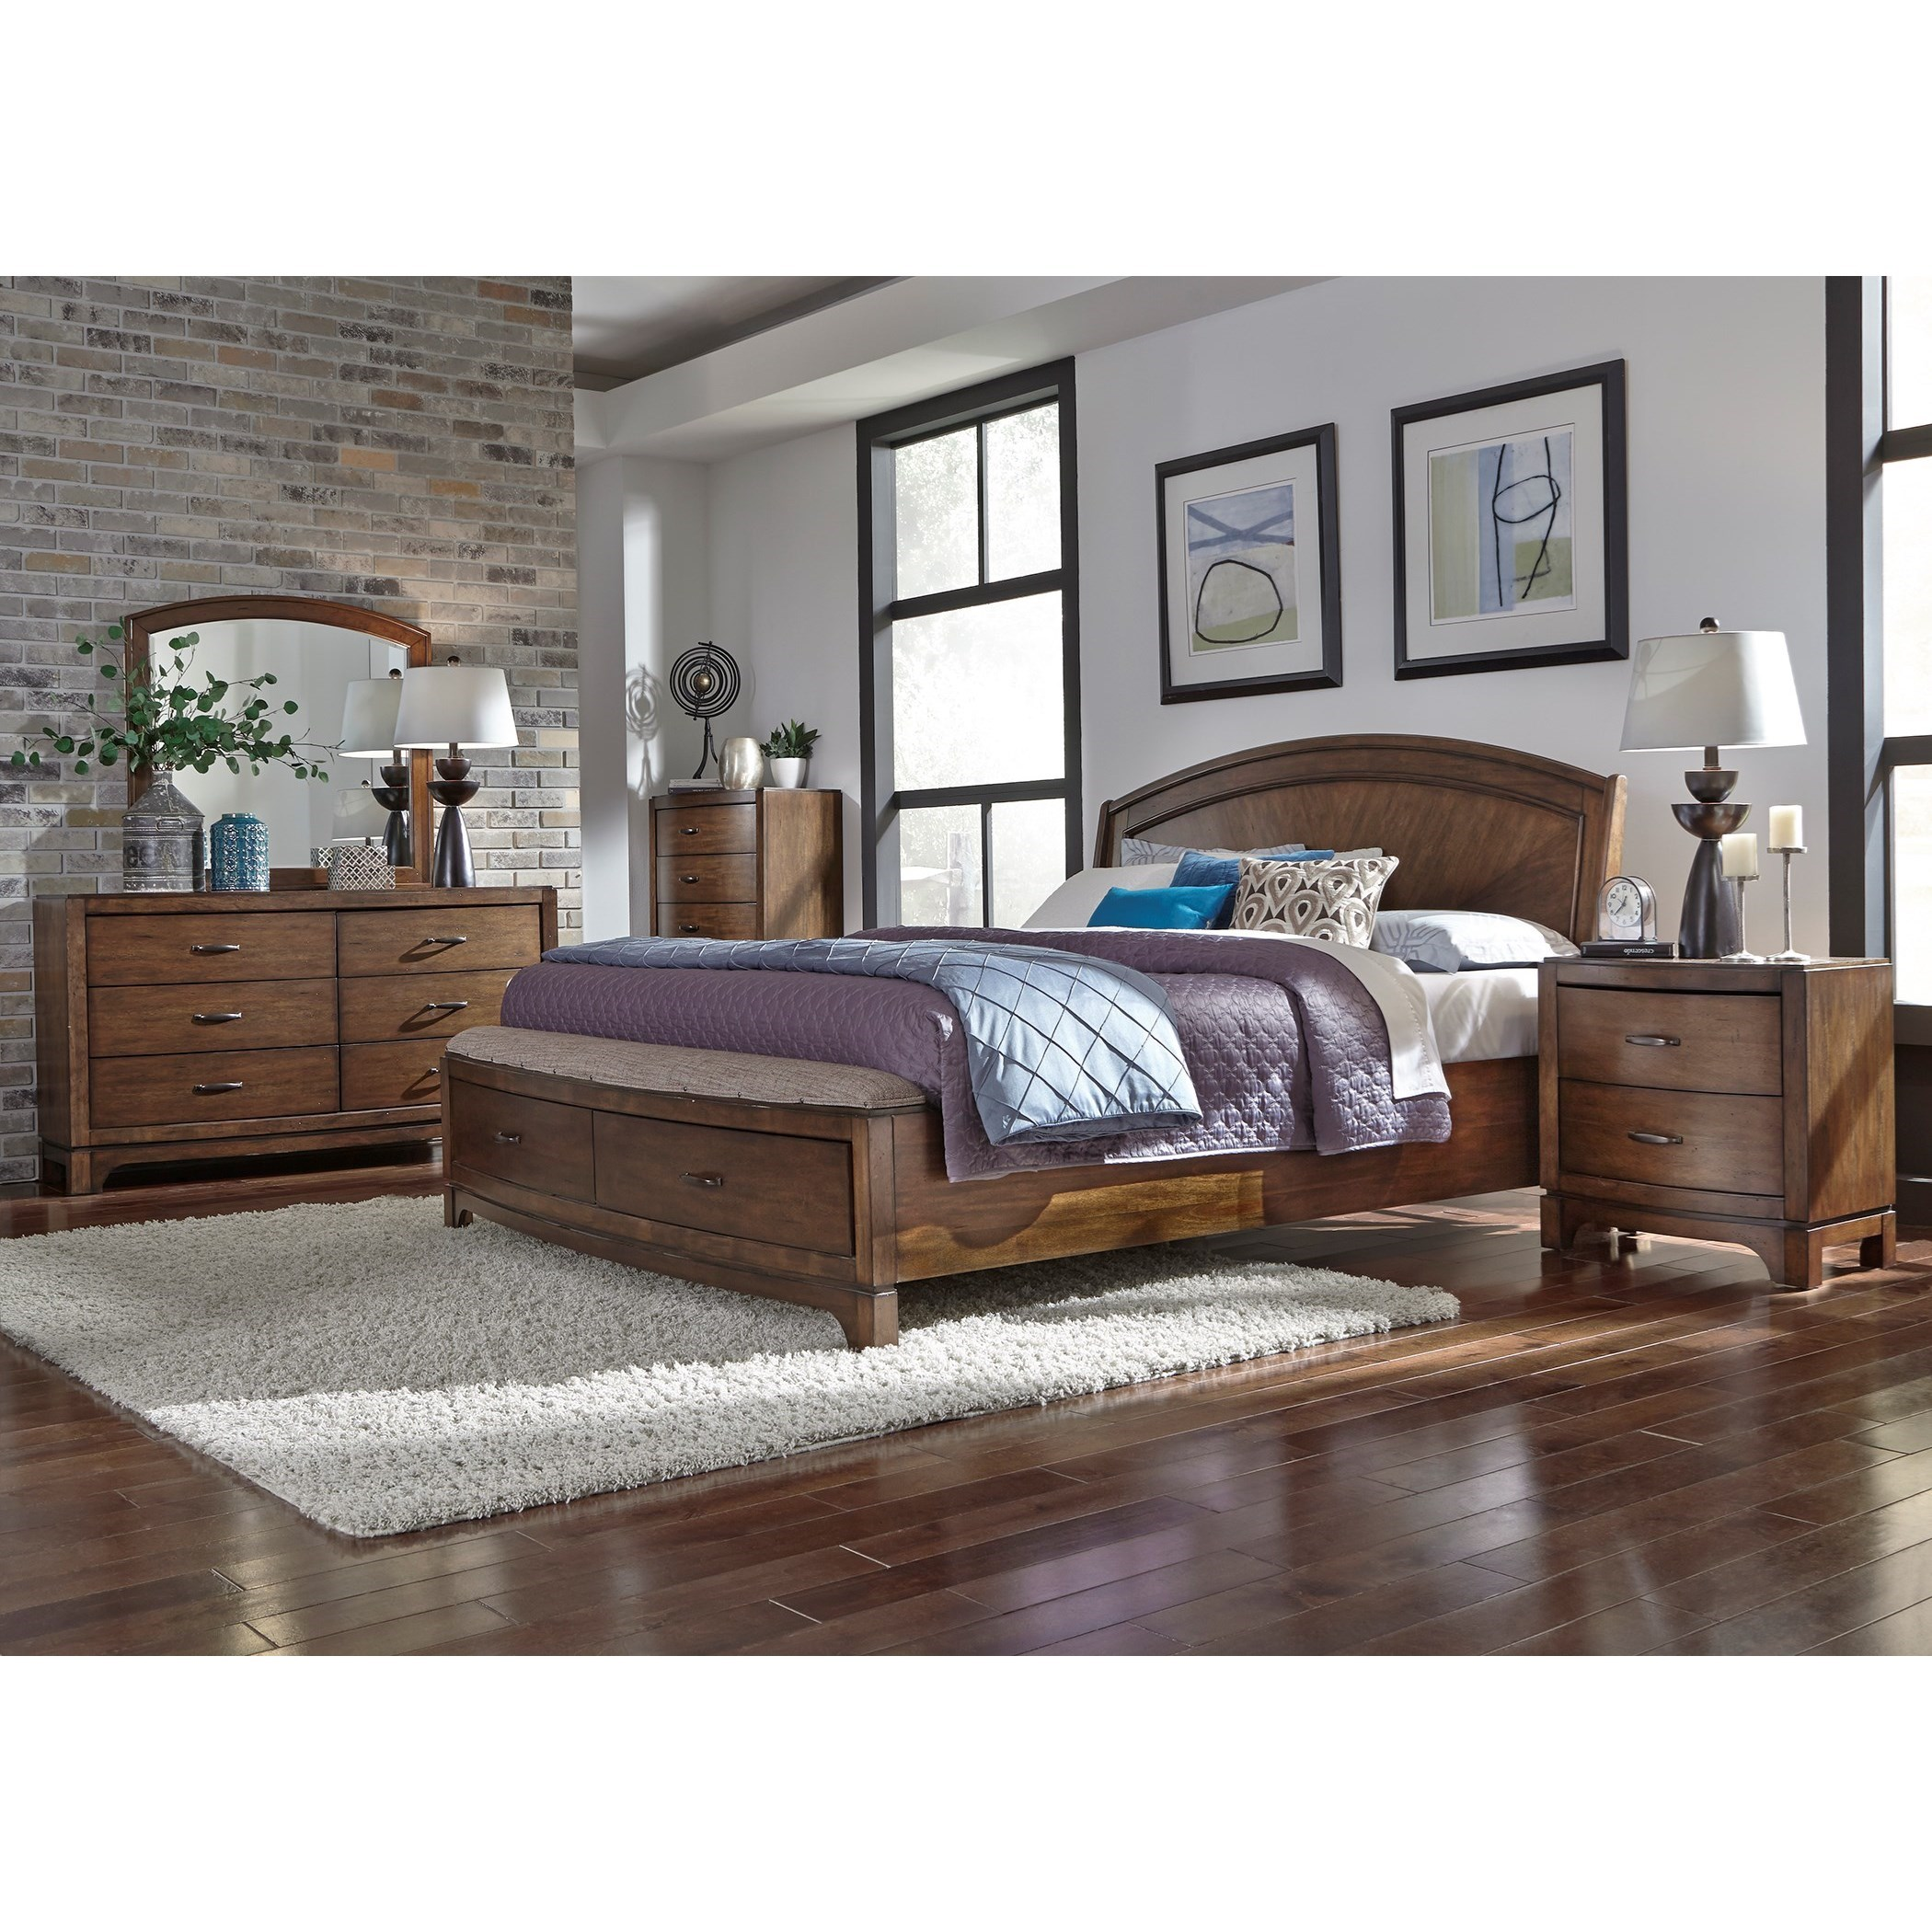 Avalon III Queen Bedroom Group by Liberty Furniture at Furniture and ApplianceMart